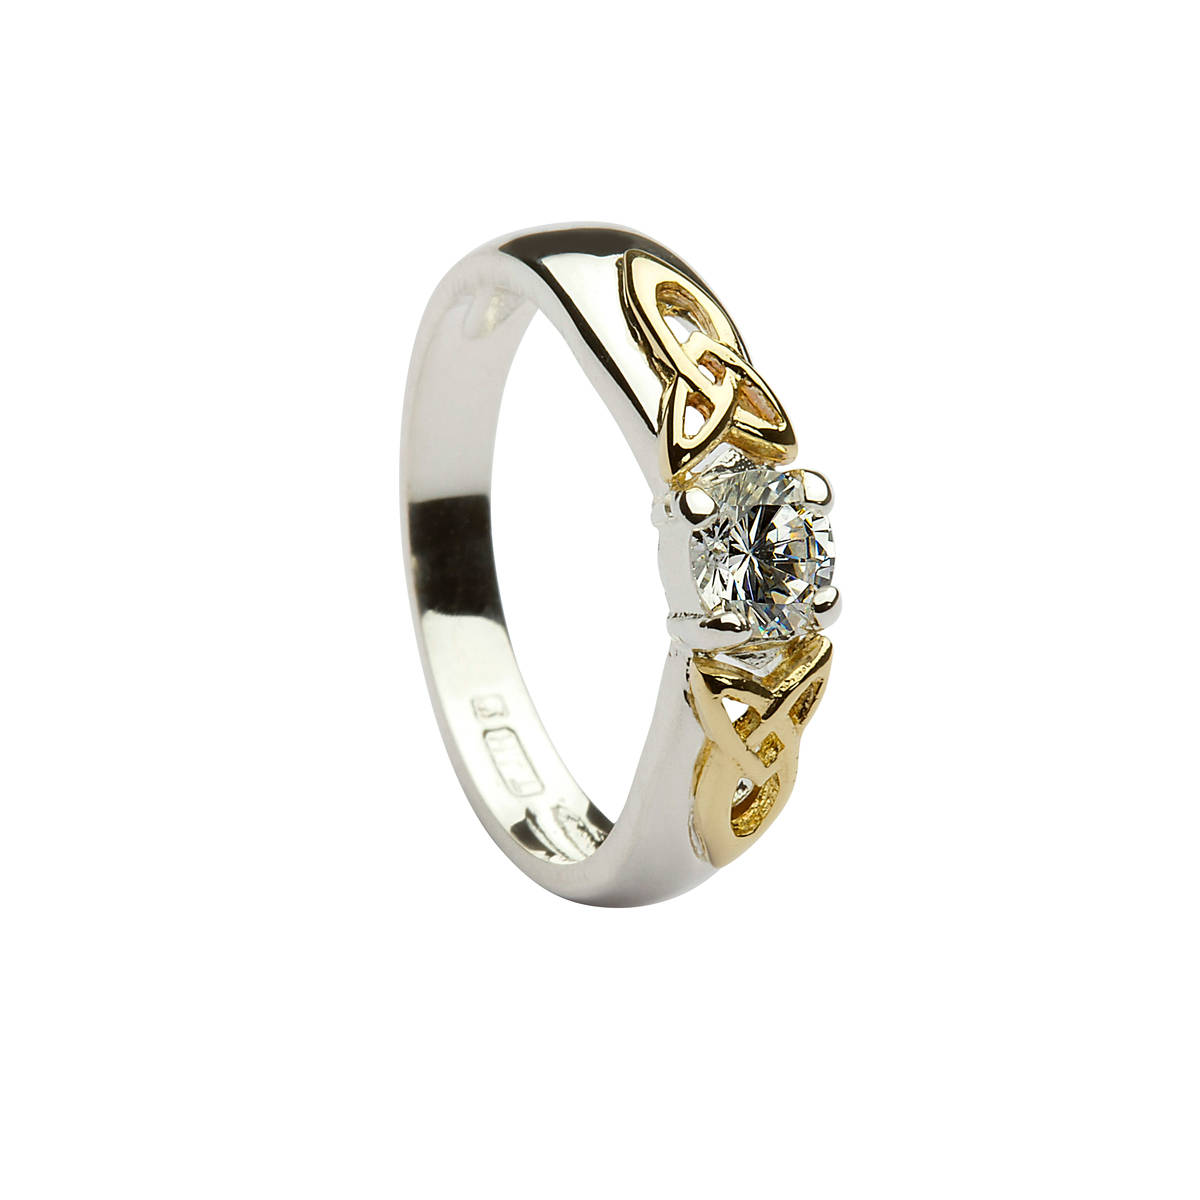 Silver ring with 10 carat yellow gold celtic knot style shoulders with cubic zirconia solitaire stone mounted dress ring